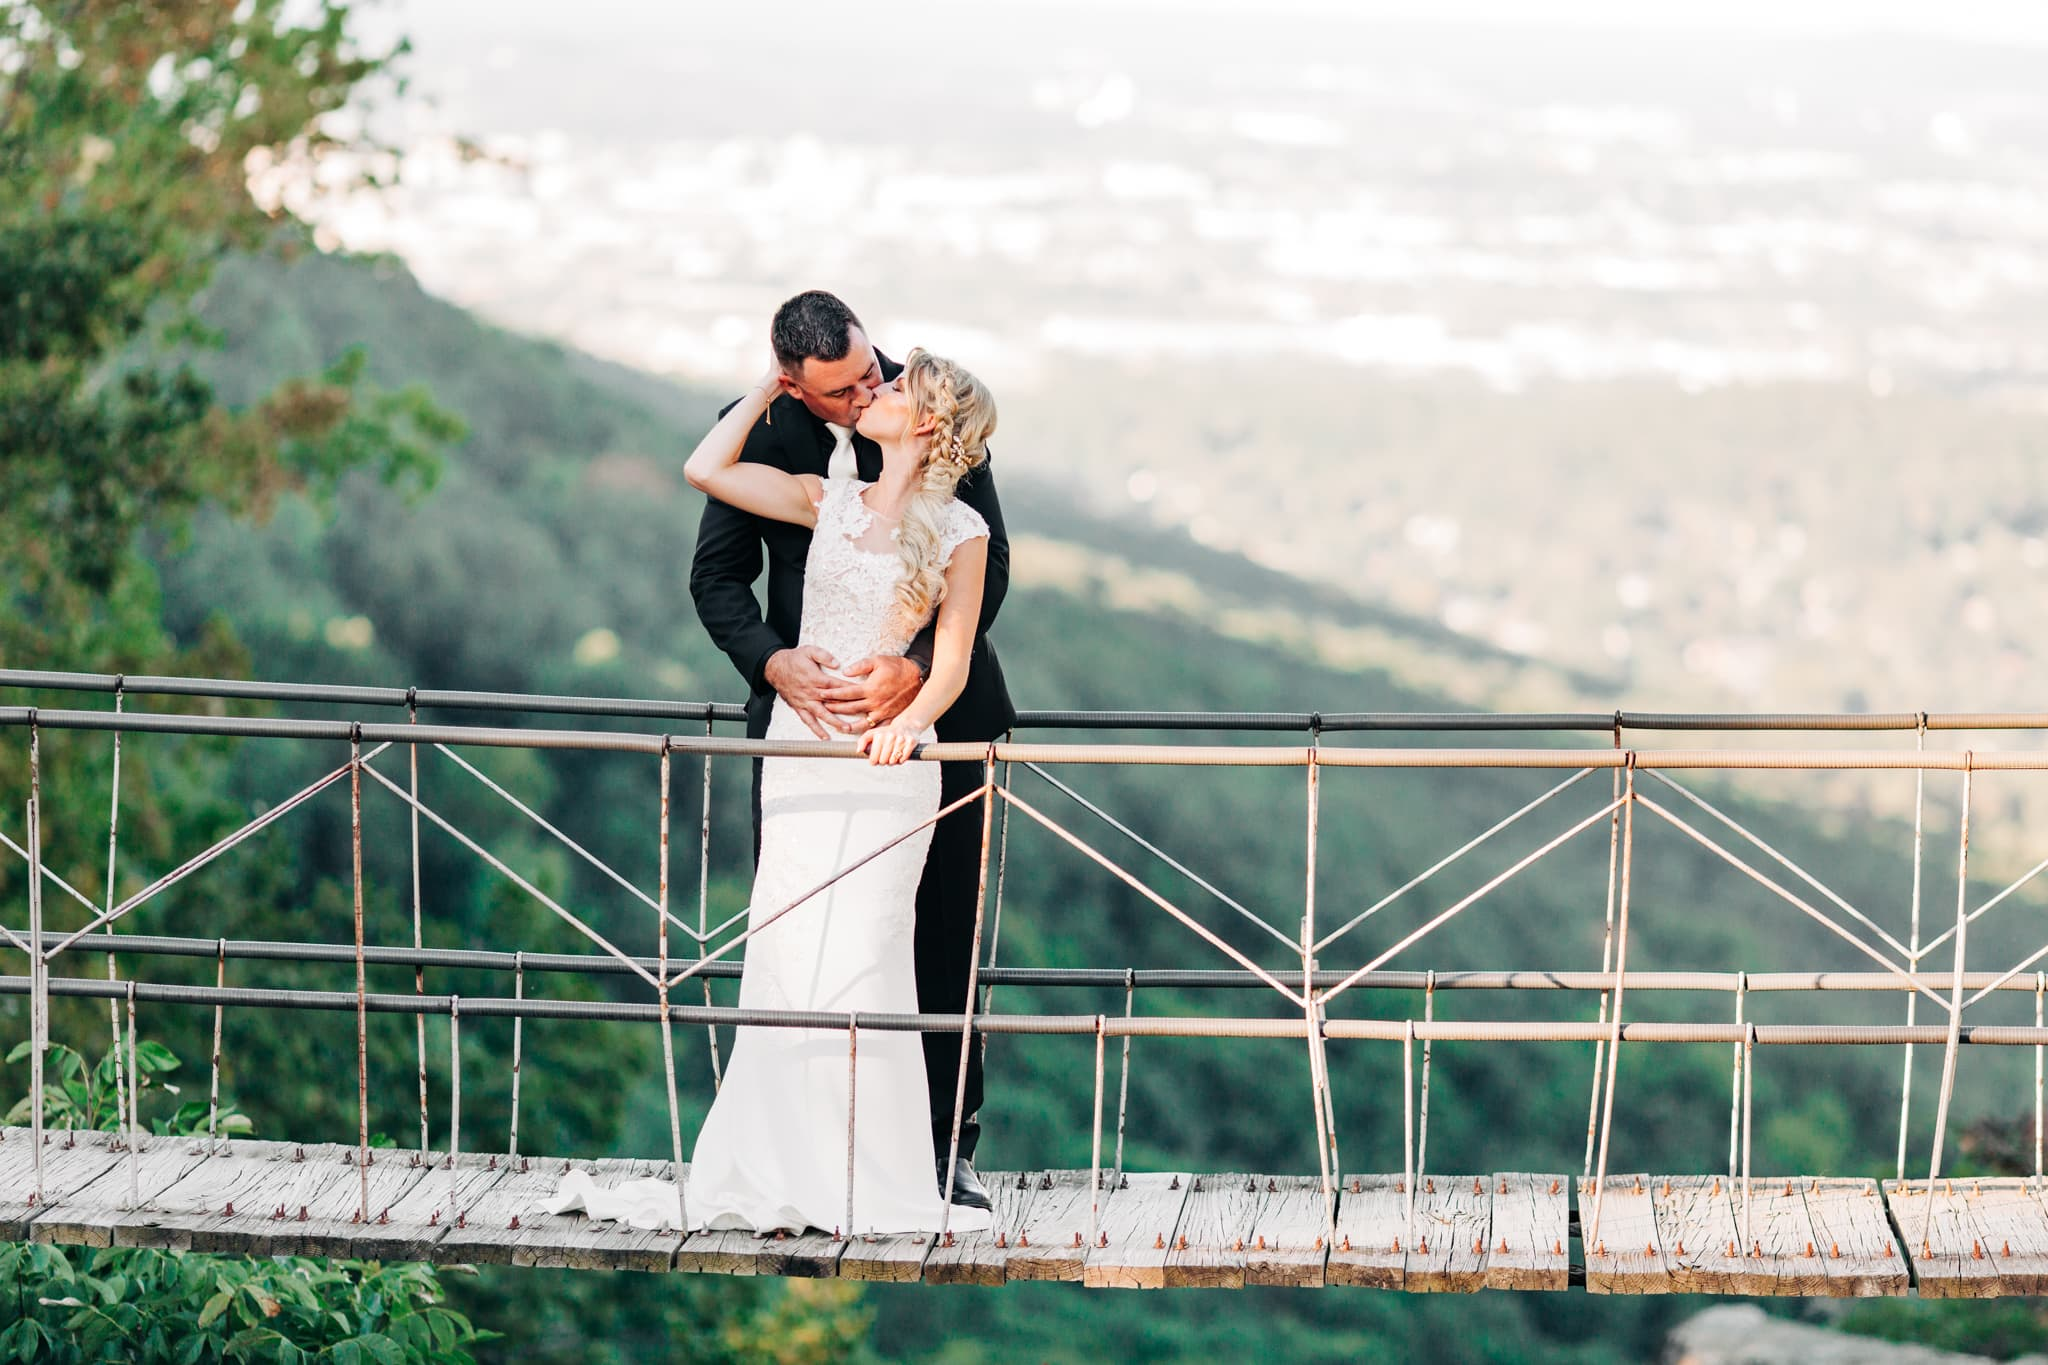 bride and groom kissing on a bride hanging over the mountains in Chattanooga Tennessee at the Grandview wedding venue